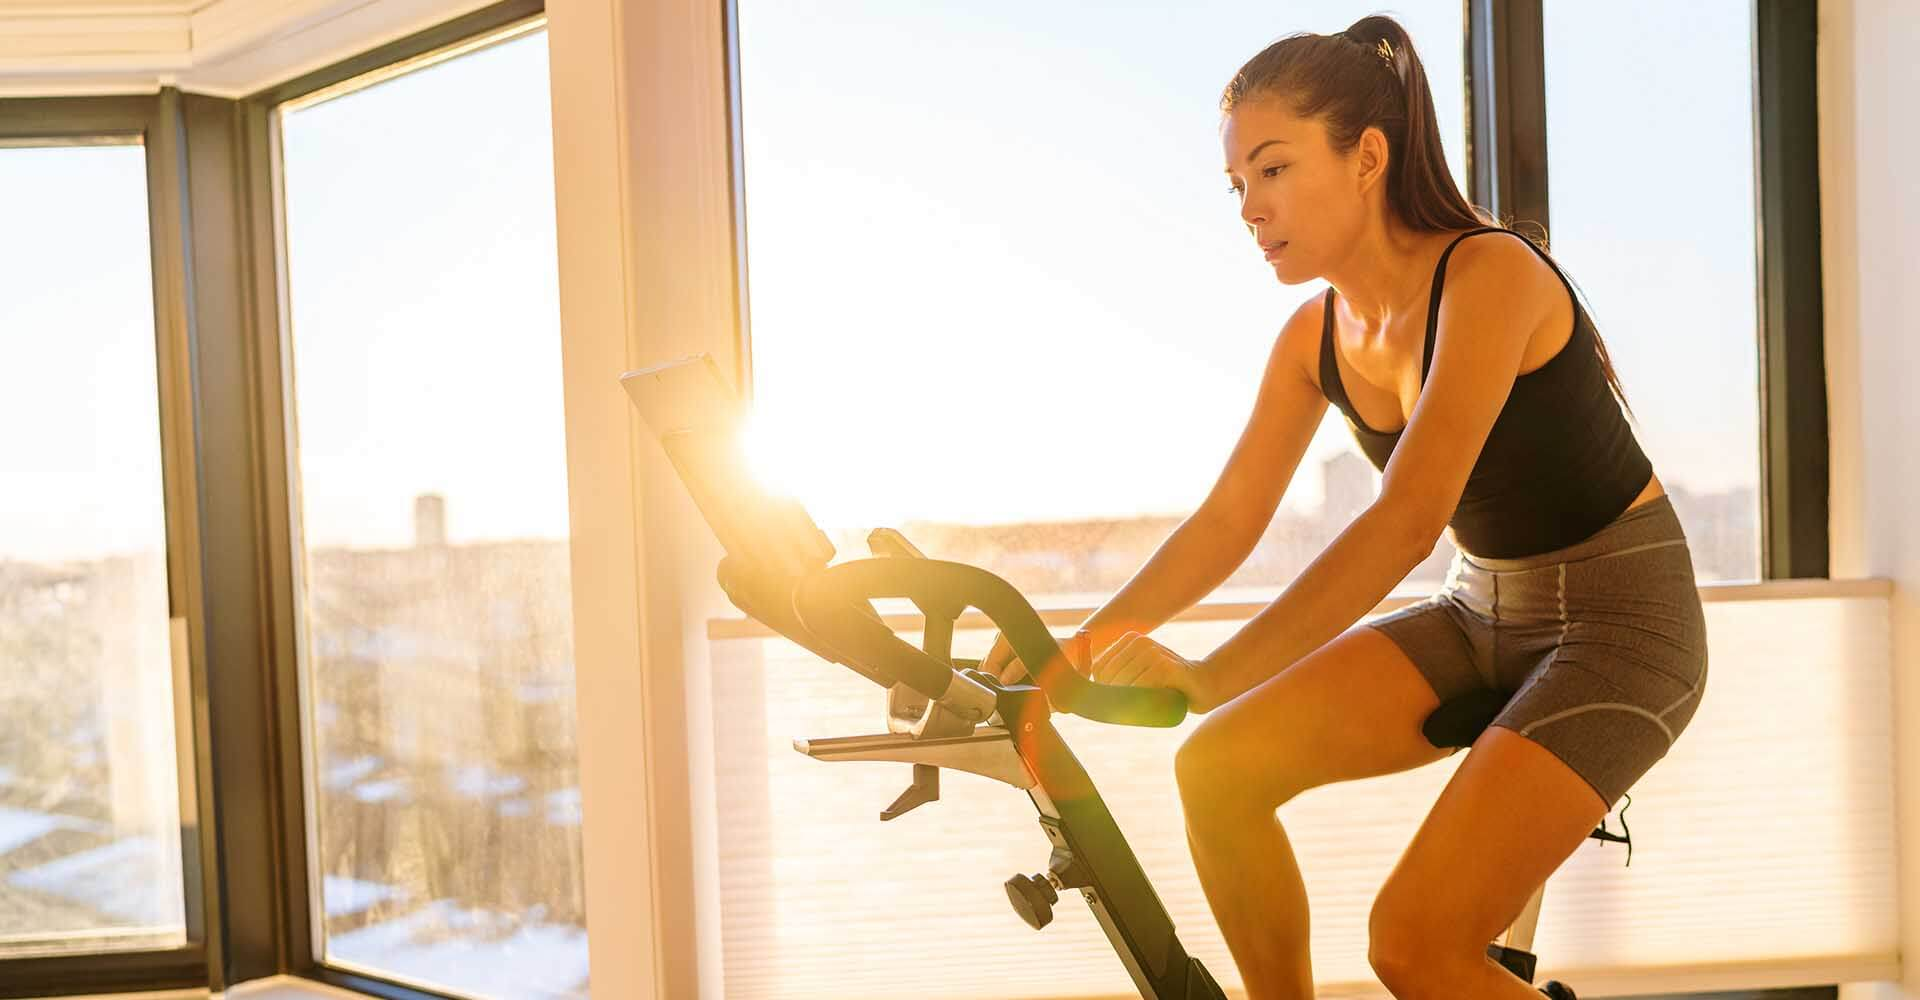 Home fitness workout woman training on smart stationary bike indoors.